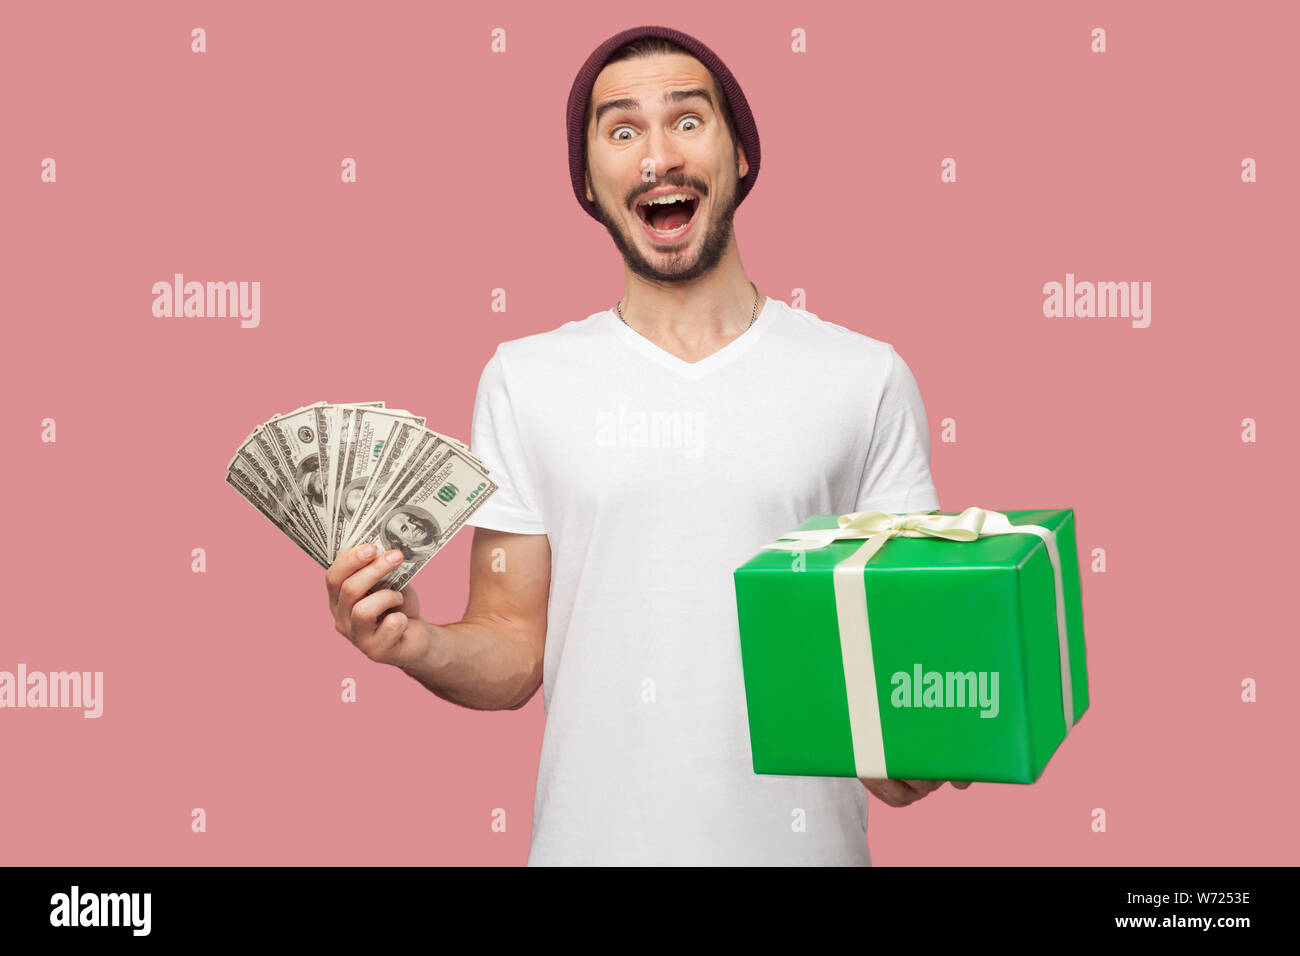 Portrait of suprised handsome bearded young hipster man in white shirt and casual hat standing, holding fan of cash dollars and green present box. Ind Stock Photo